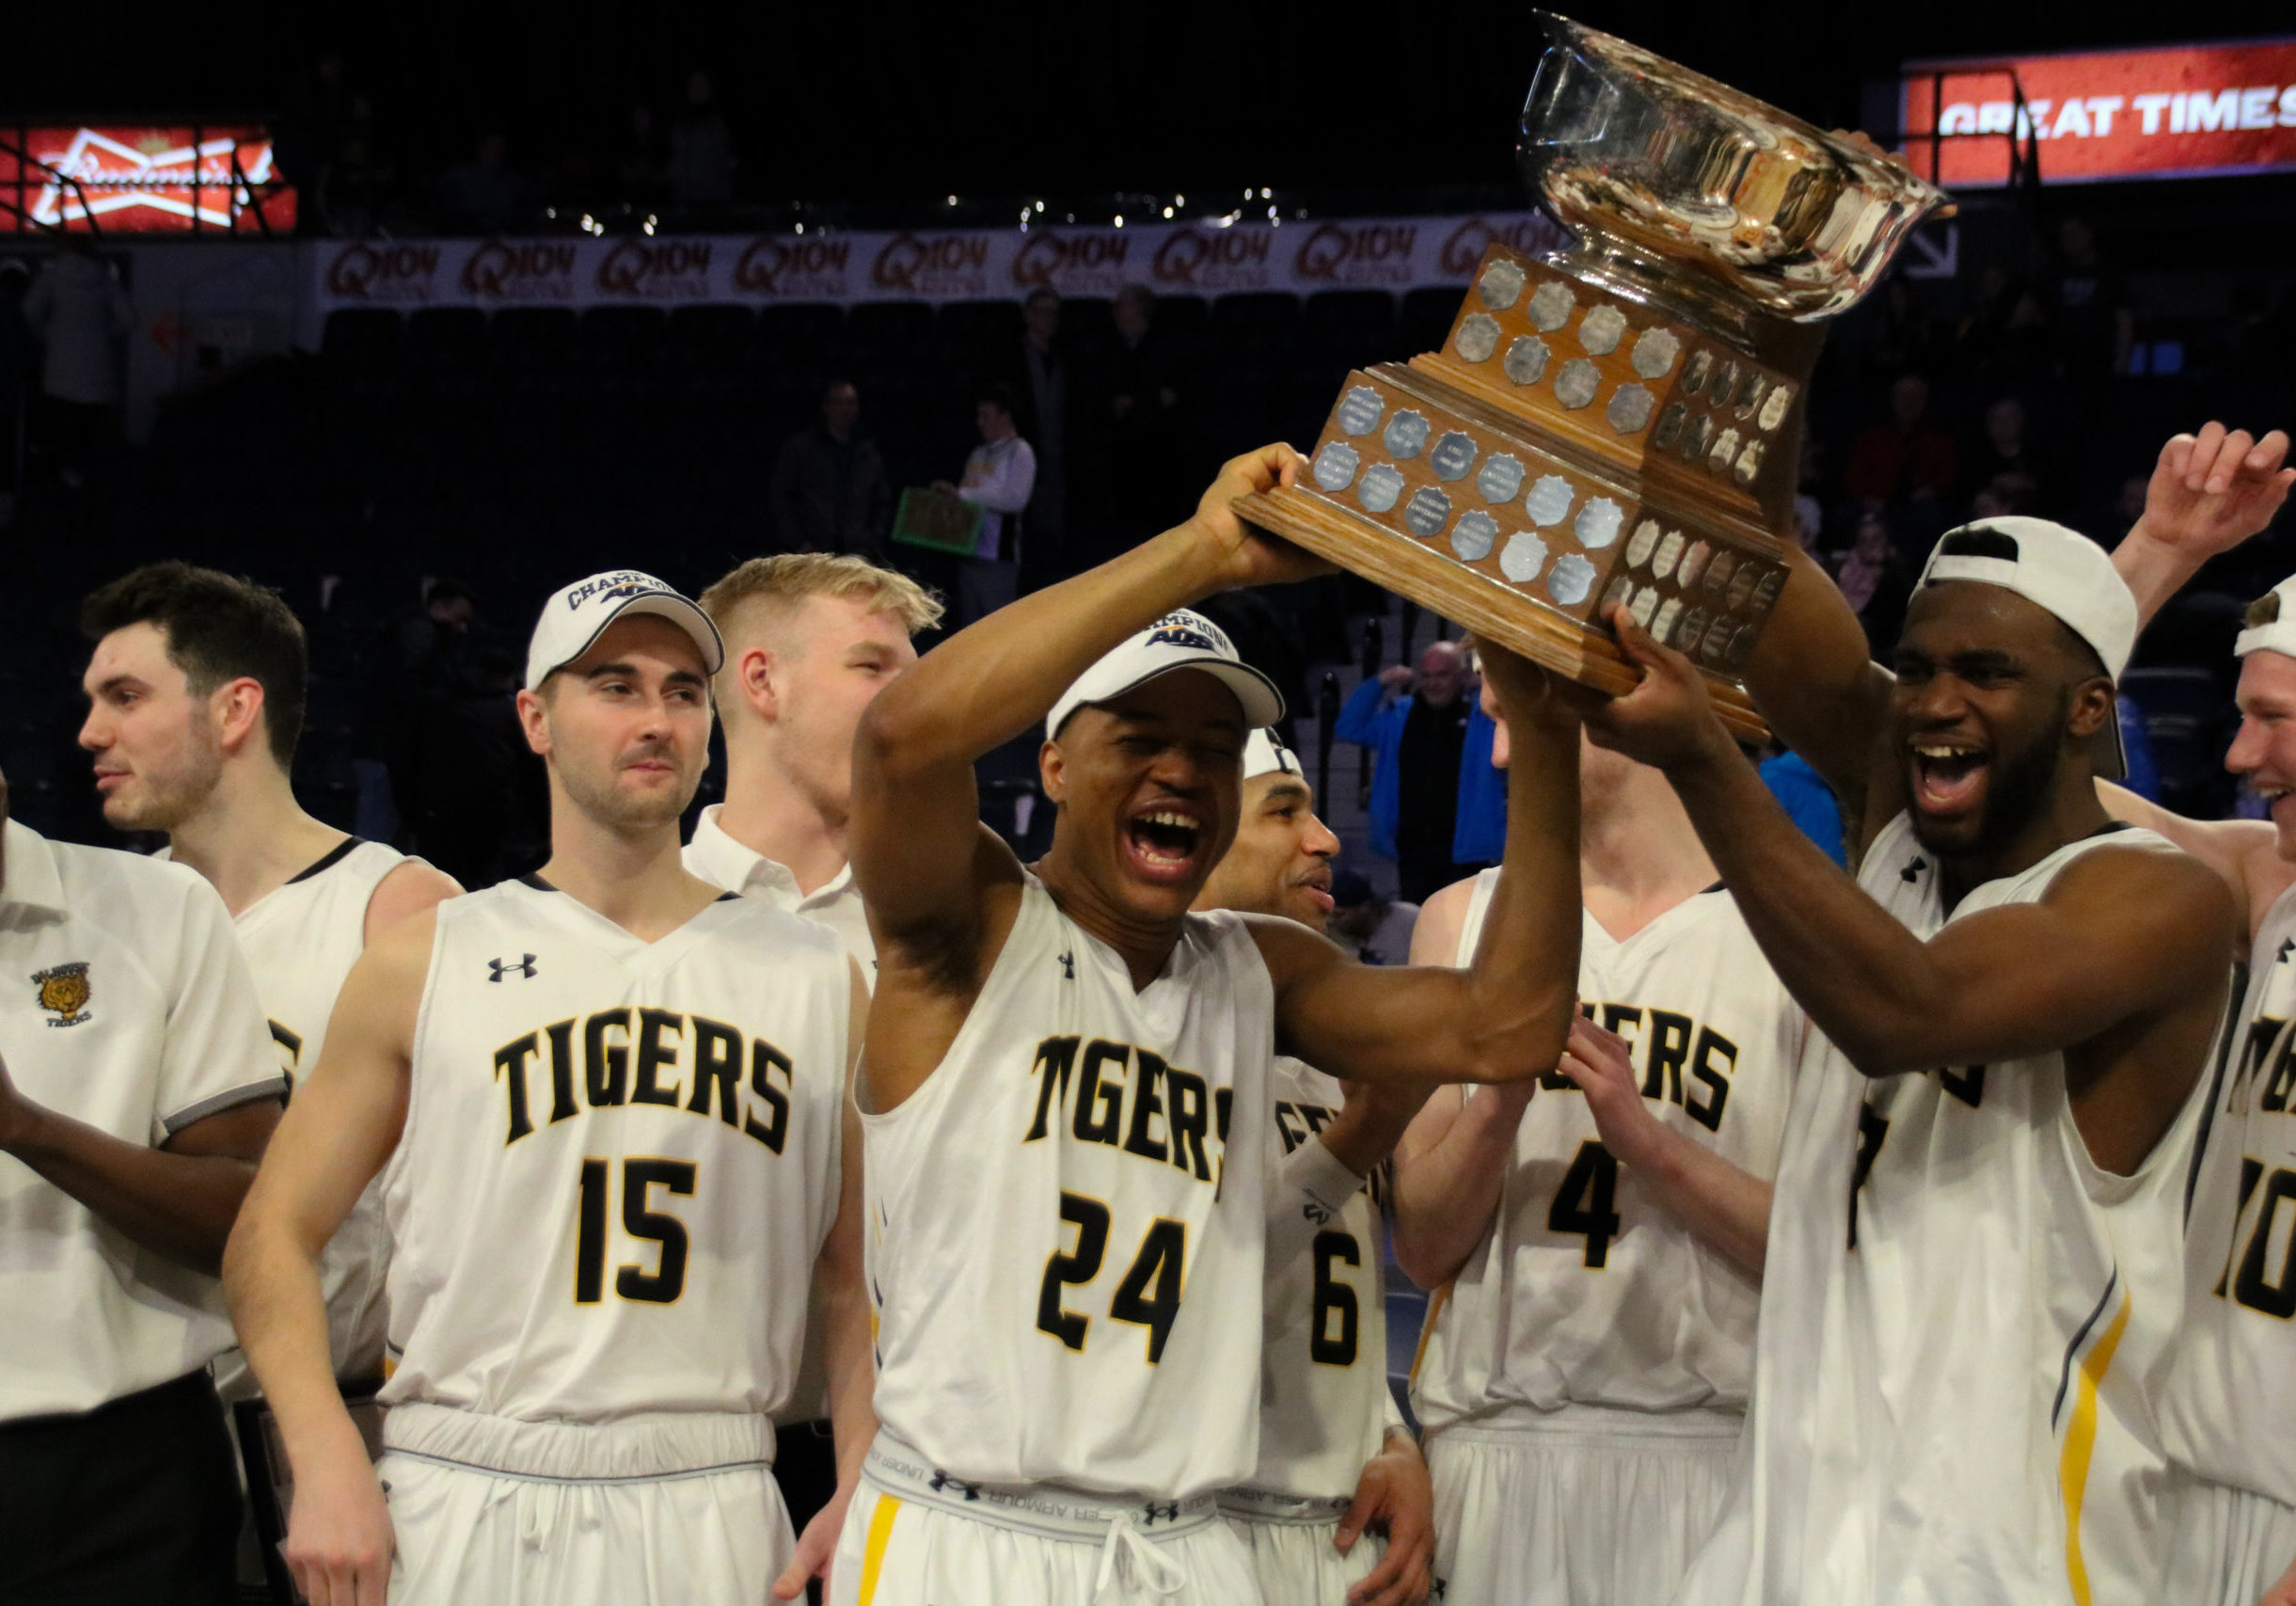 In this image: Shamar Burrows (left) and Jordan Wilson hold the AUS championships trophy among other Tigers.